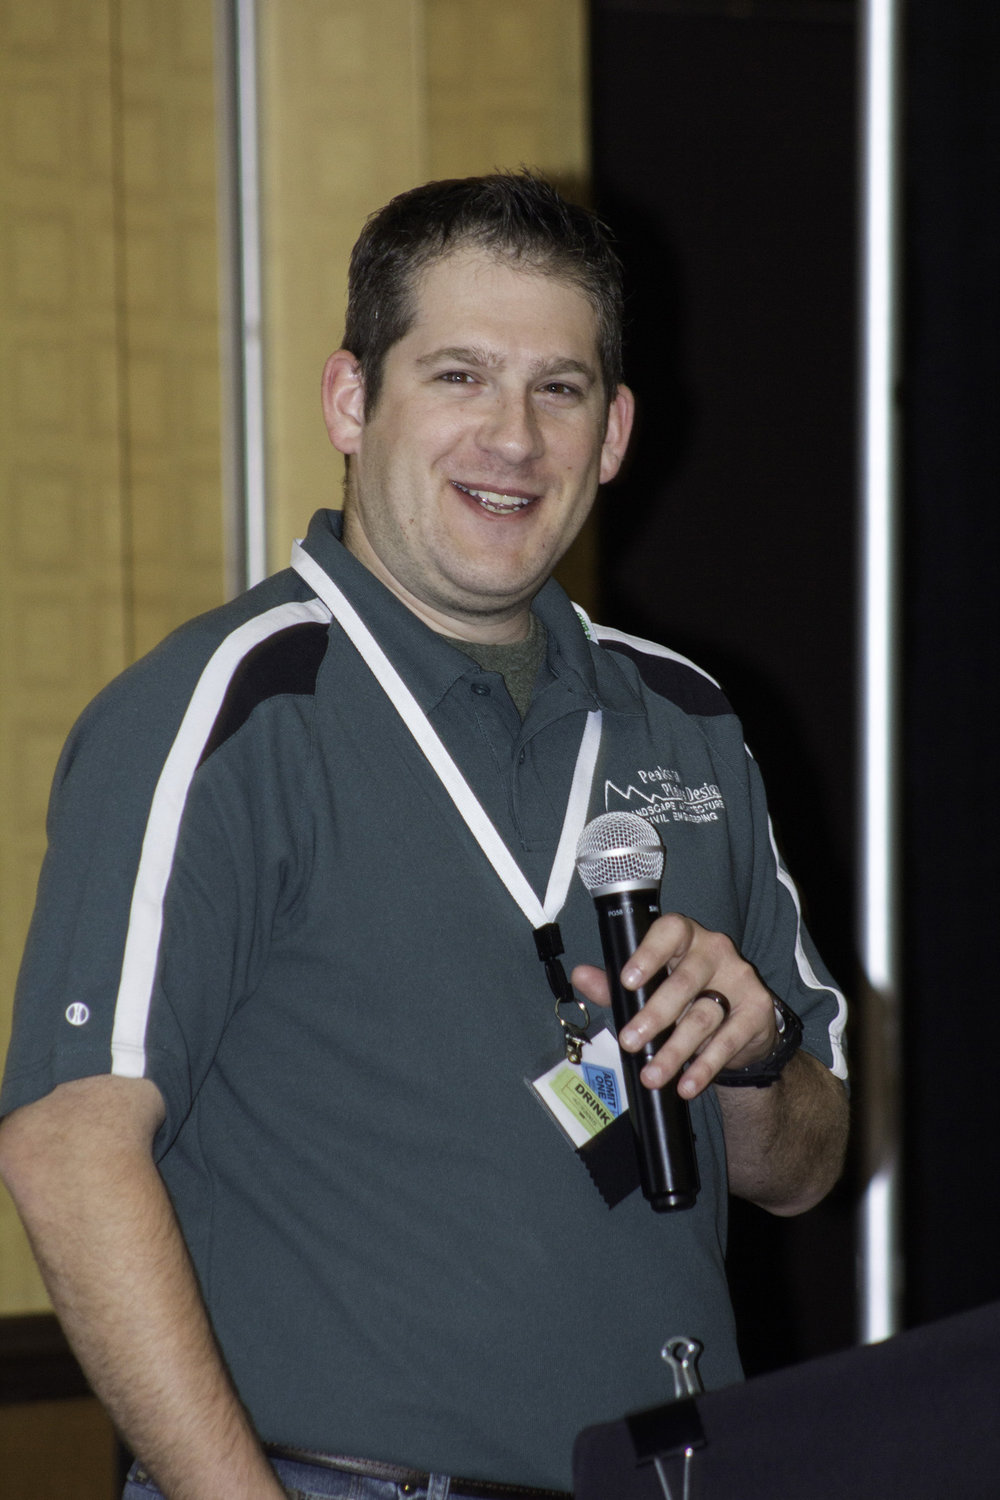 Conference-037.jpg